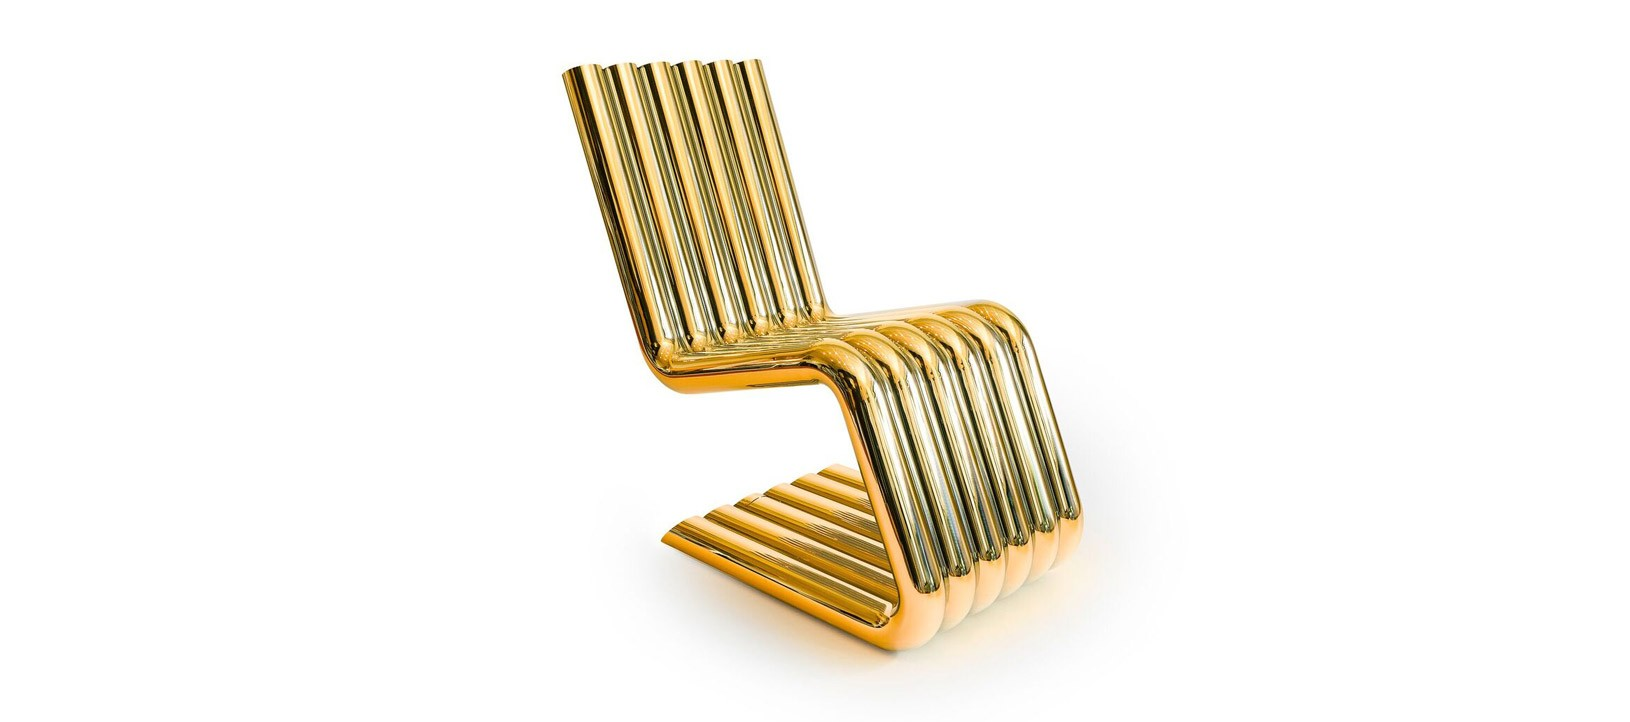 XOSTED - automotive inspired golden Chair